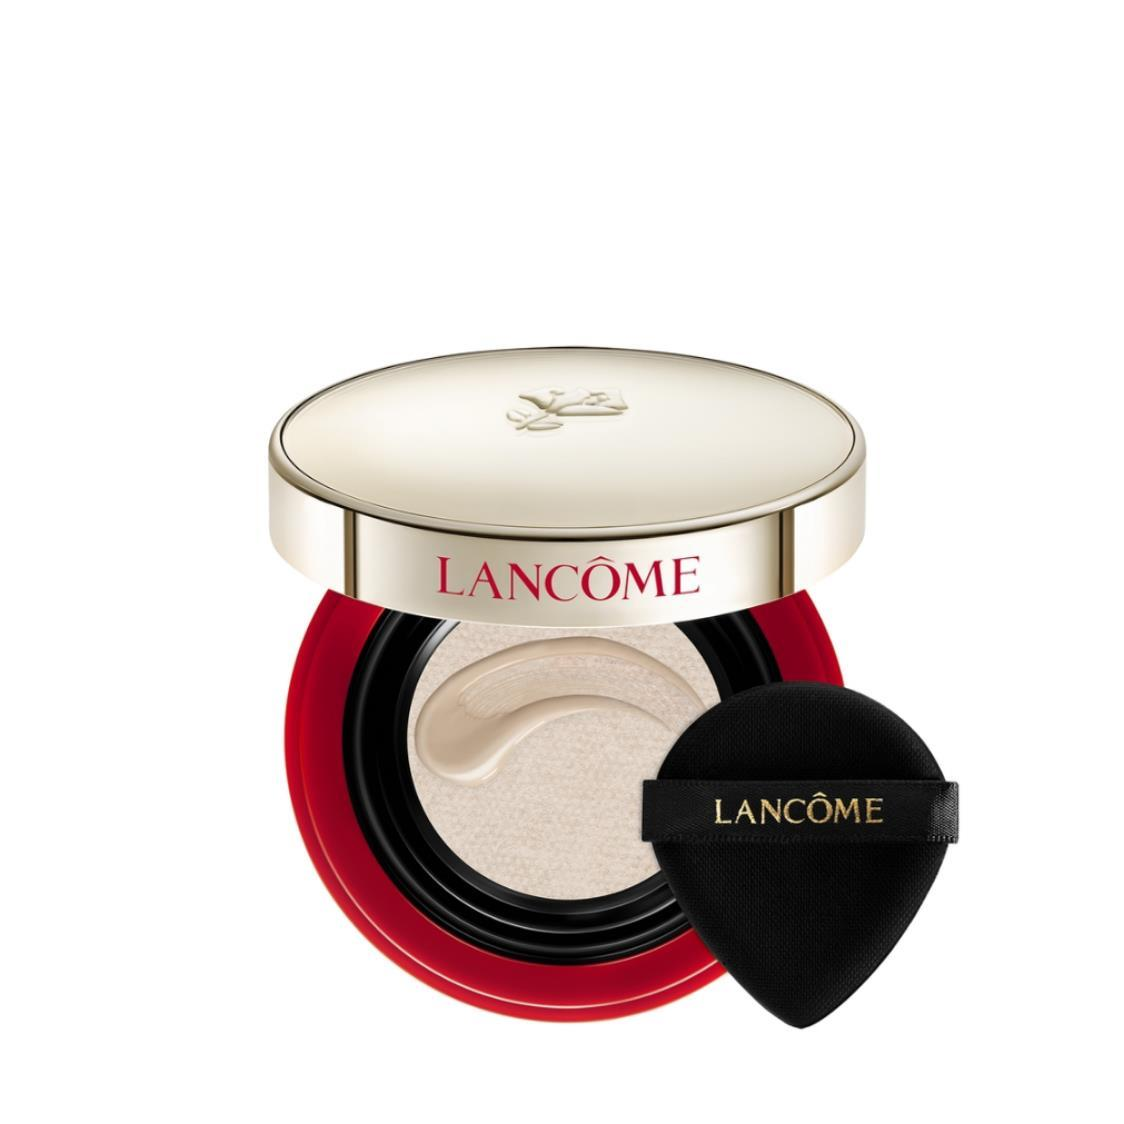 Lancome Absolue Cushion CNY 2019 Limited Edition 100